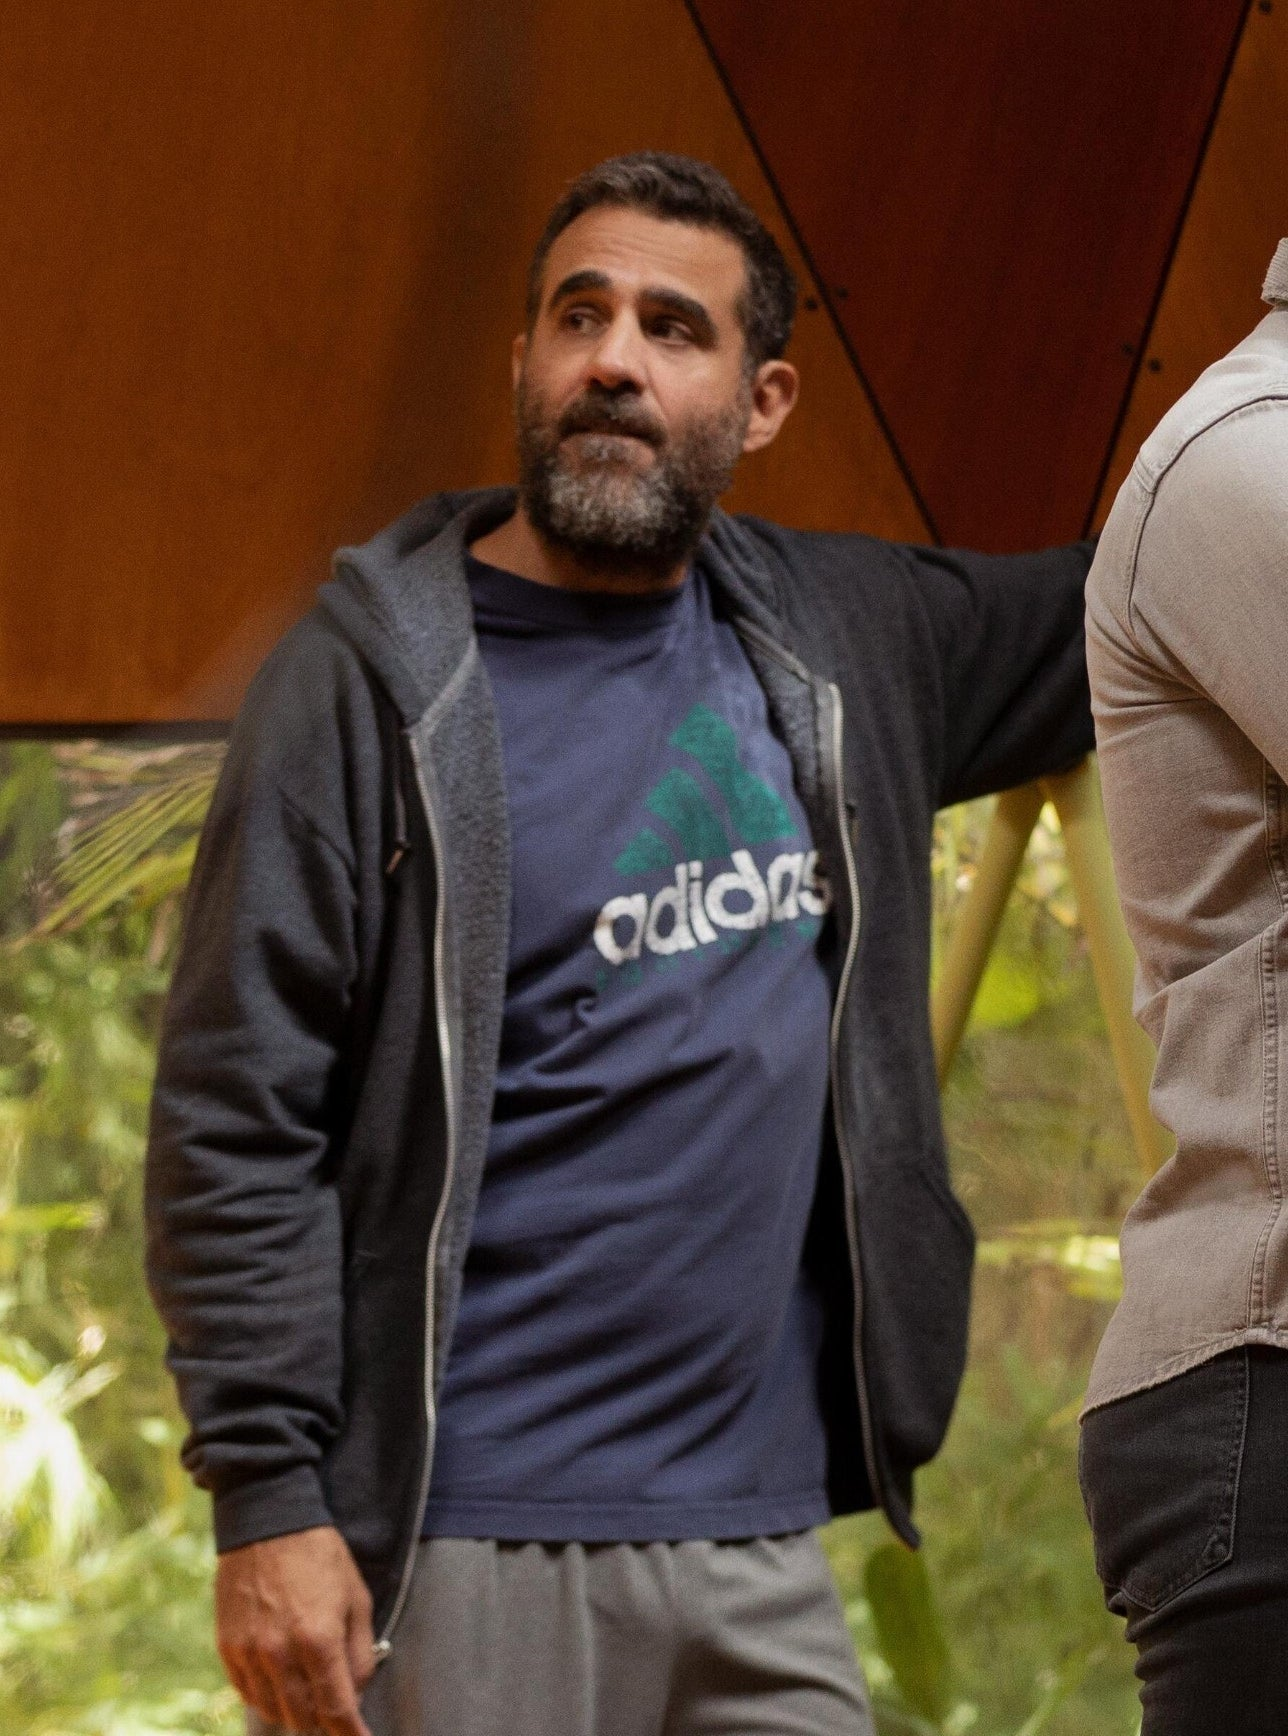 Bobby Cannavale leans against the side of the meeting room